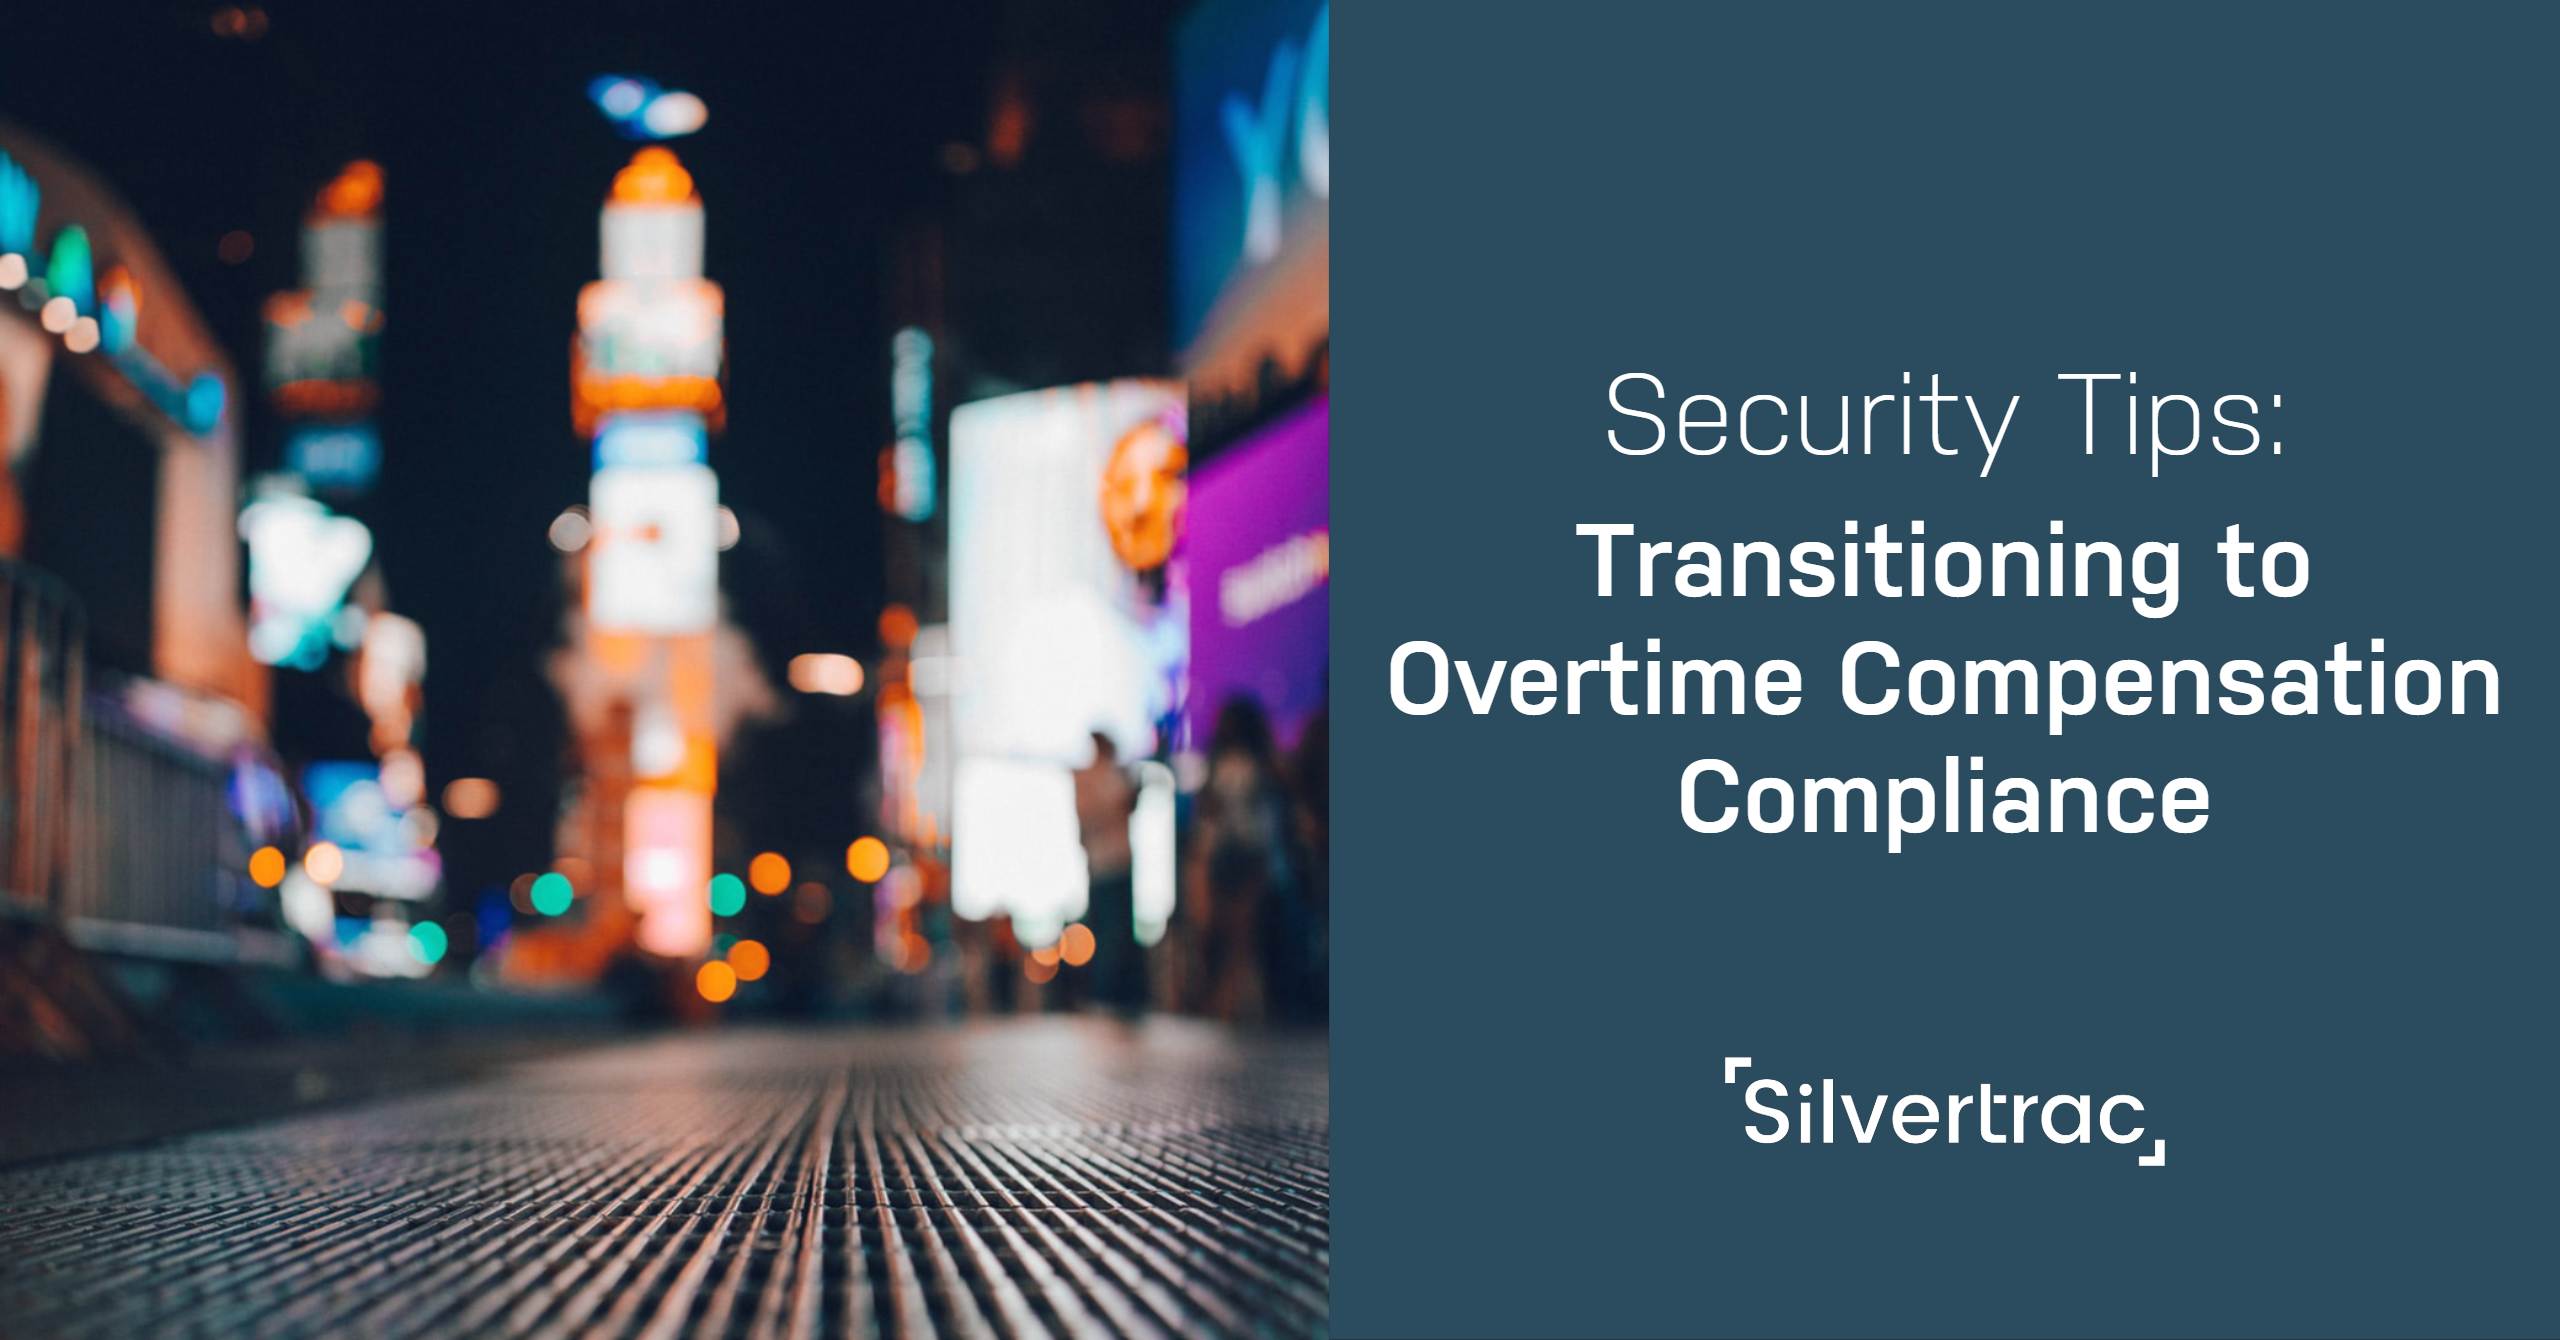 Overtime Compensation Compliance